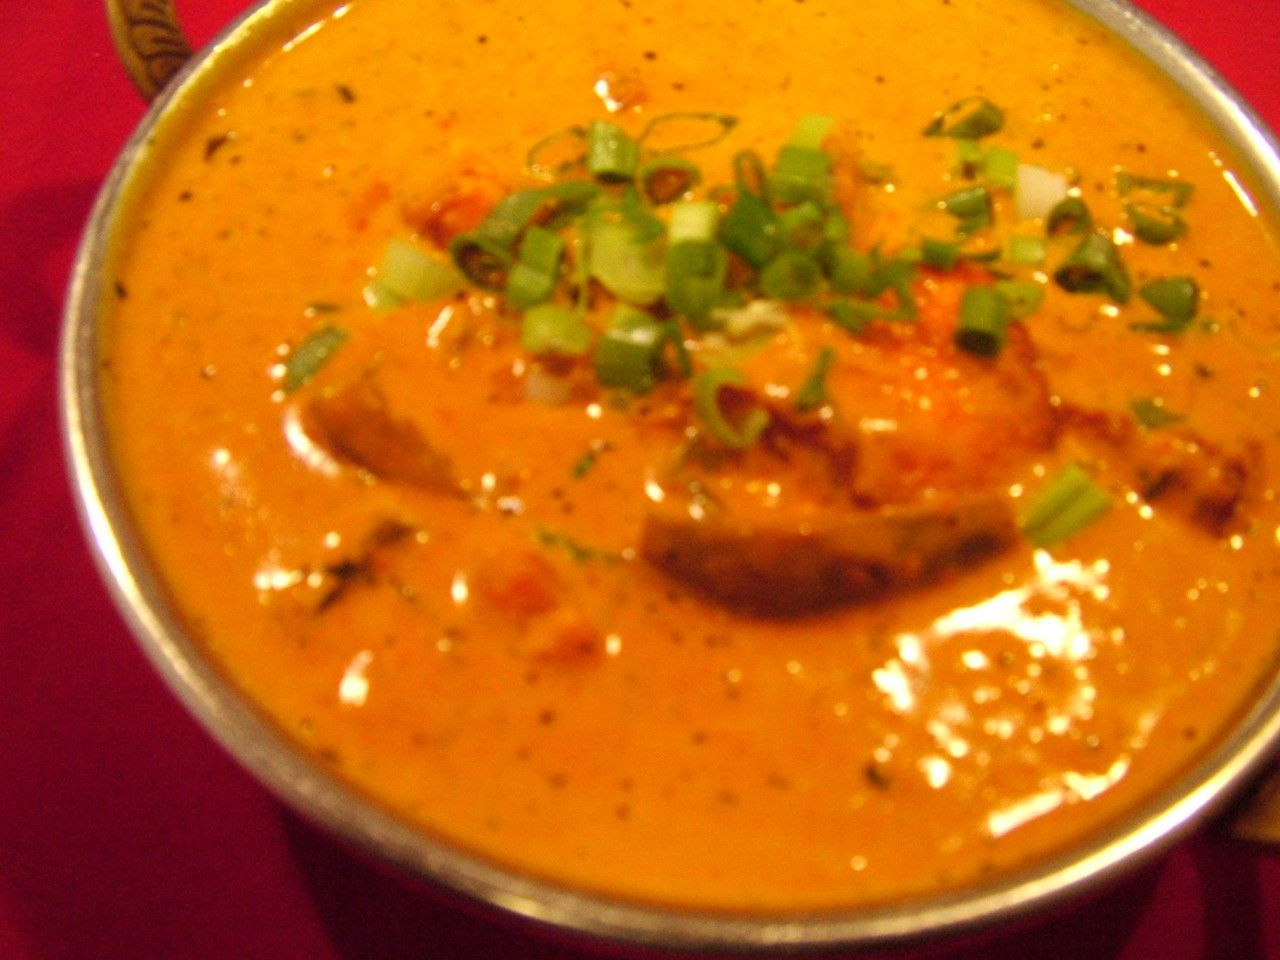 Chicken tikka masala sub out milk products for coconut products chicken tikka masala sub out milk products for coconut products forumfinder Image collections